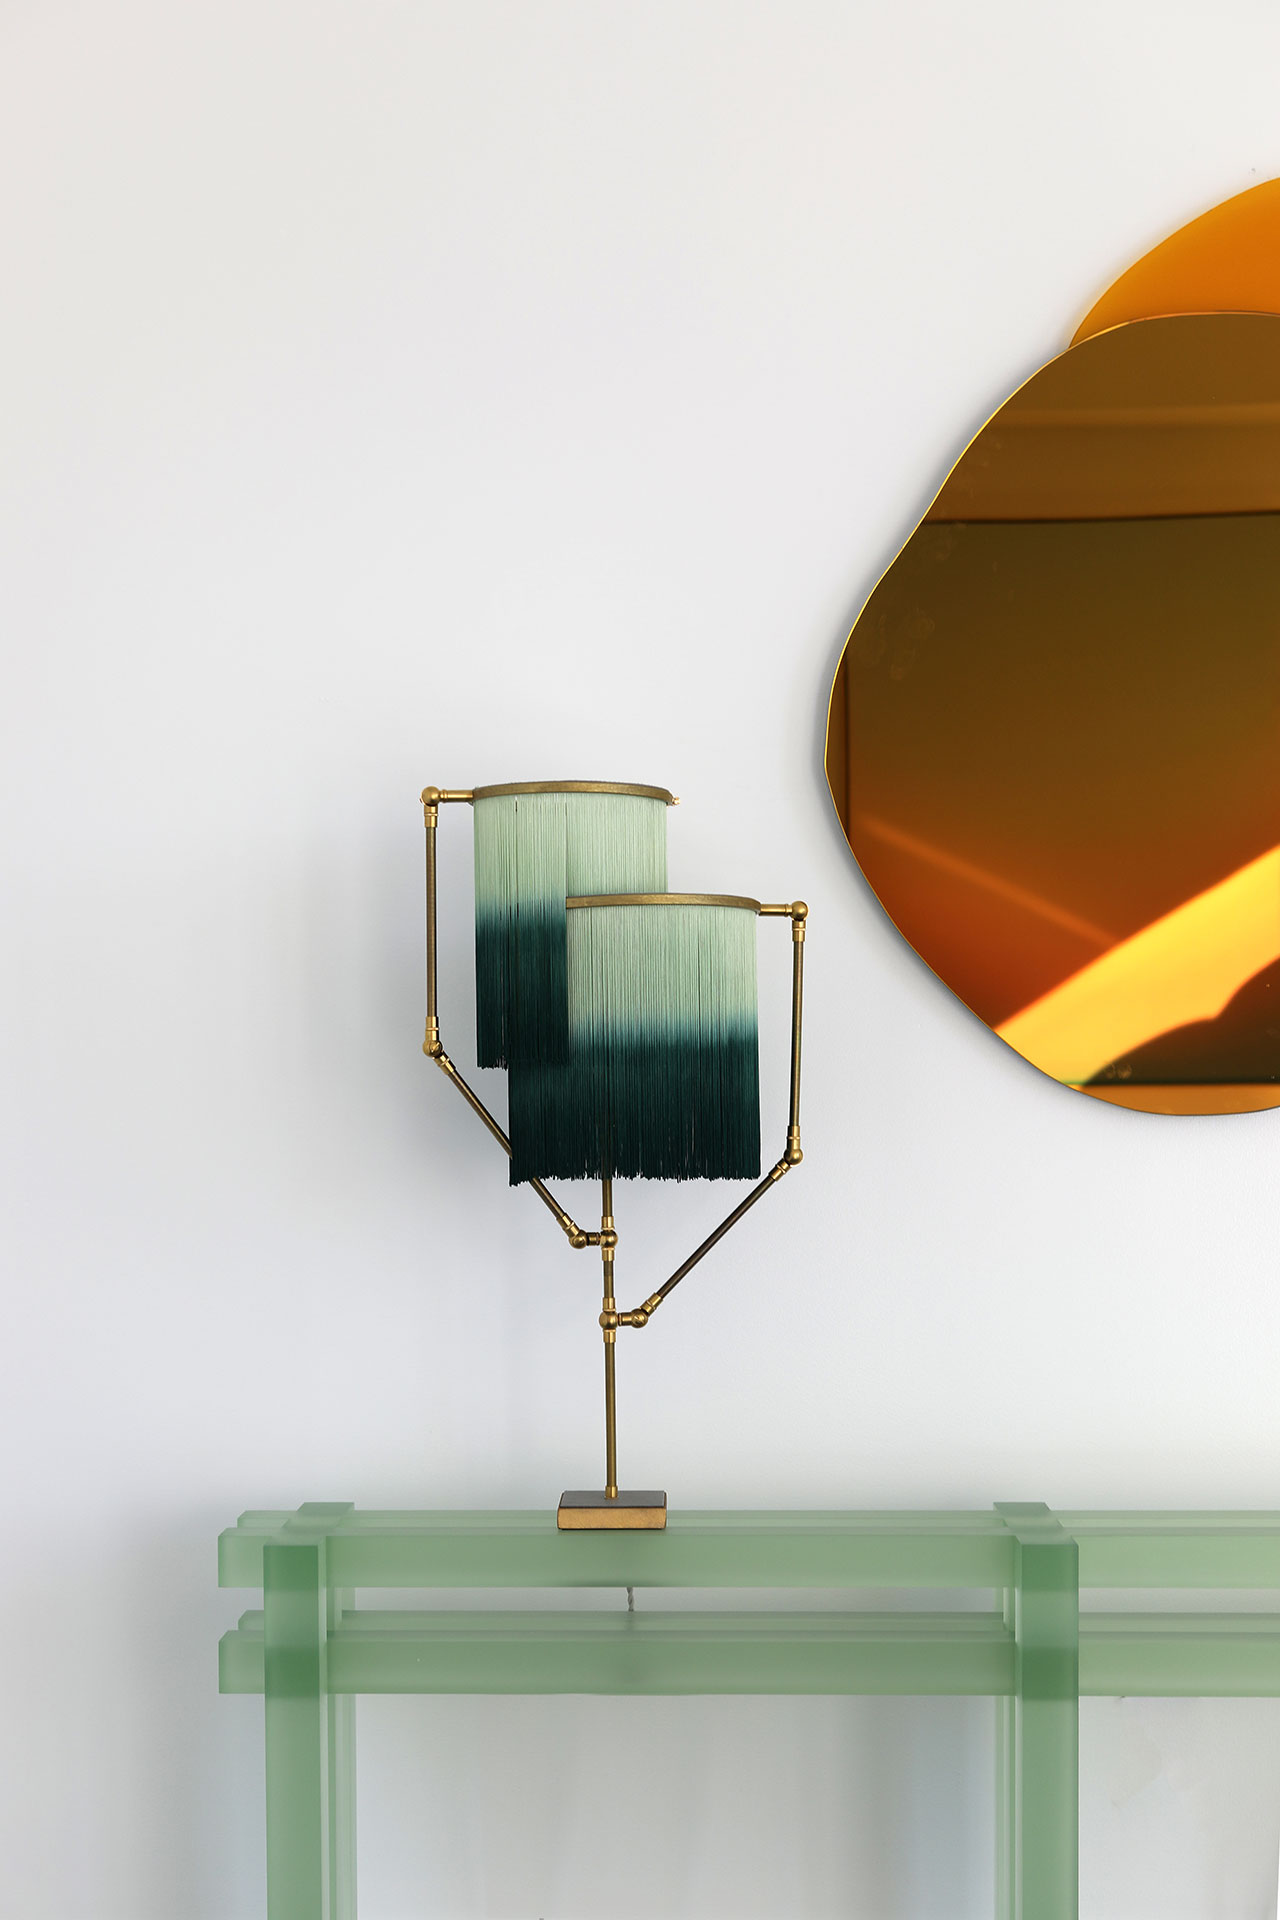 Galerie Philia at Walker Tower, Chelsea, New York. Courtesy of Galerie Philia. Featured:  Laurène Guarneri, Ombrée hand-sculpted mirror, 2020. Gold mirror, yellow glass. 85 x 100 x 1.3 cm. Sander Bottinga, Charme Table Lamp, 2019. Brass, Leather, Viscose, Wood. 73 x 38 x 25 cm.  Laurids Gallée, Green Console. Resin. 150 x 25 x 70 cm.